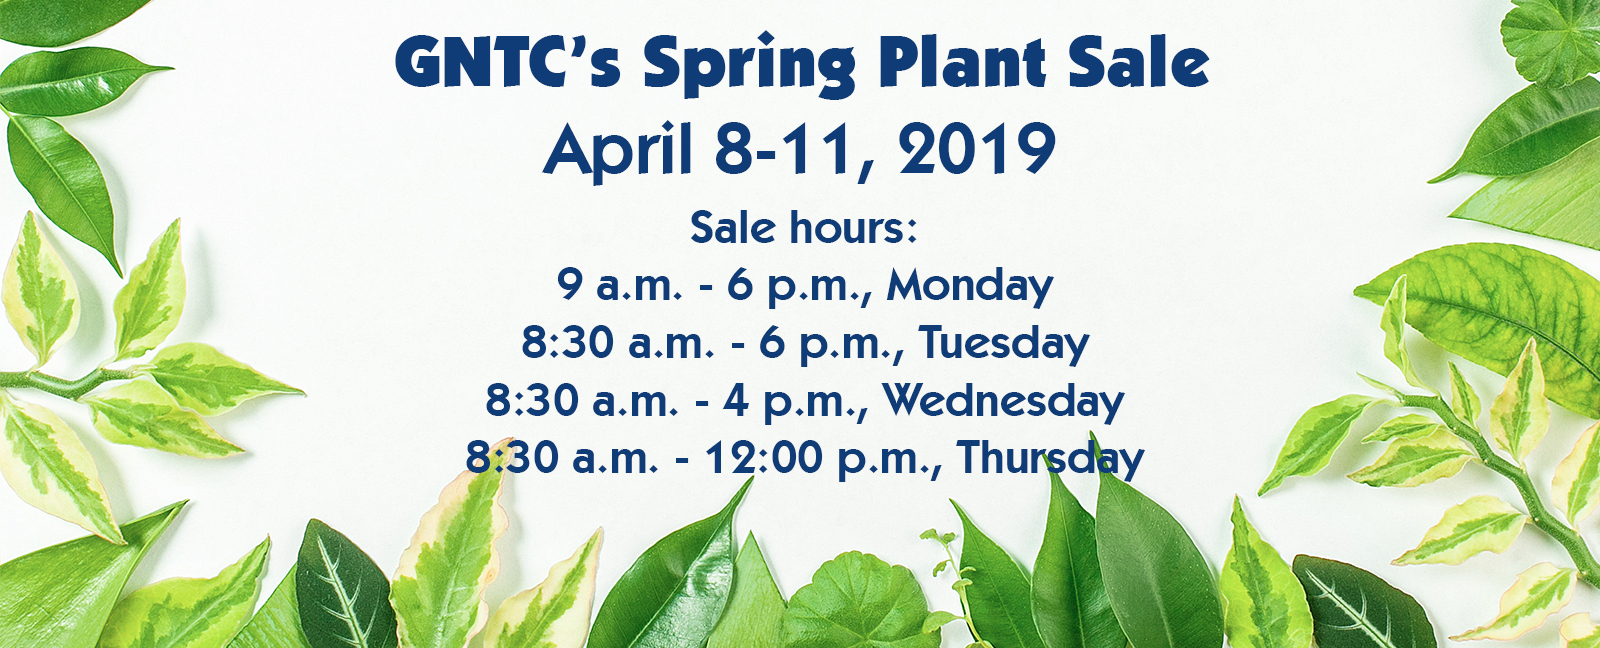 GNTC Spring Plant Sale April 8-11 